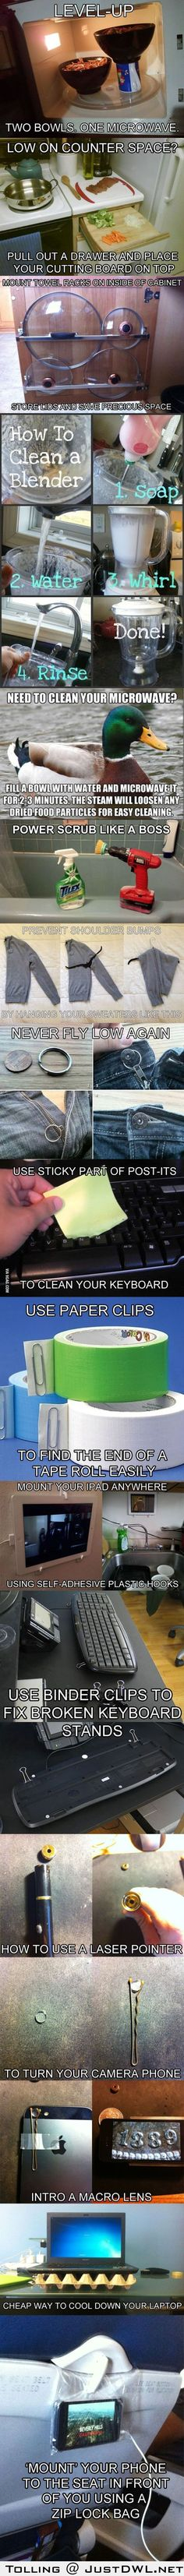 15 Clever Life Hacks to Simplify Your World (Wow! Def stealing some of these ideas!)